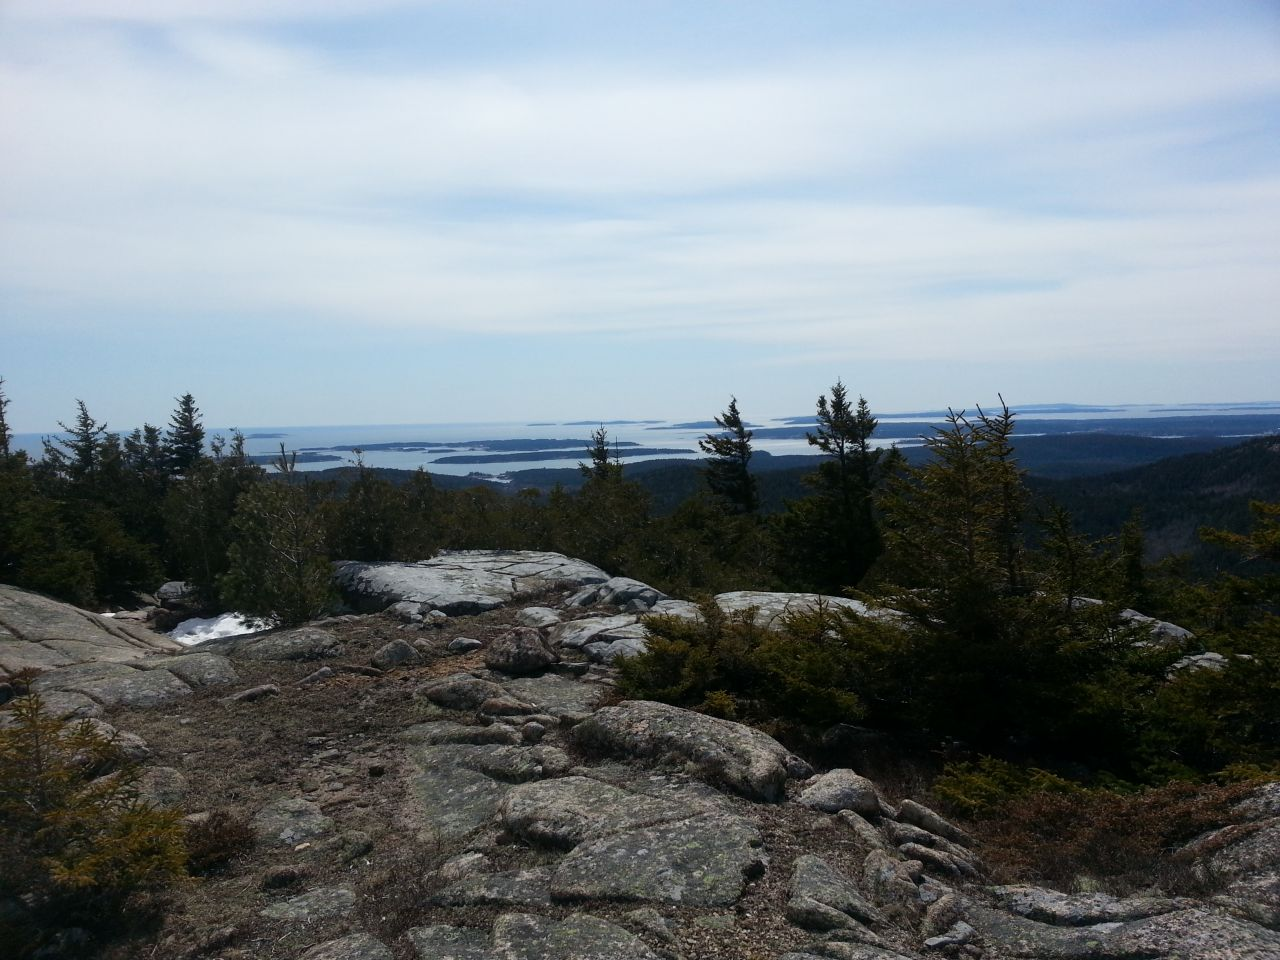 Acadia - Views From Cadillac Mountain, South Ridge Trail